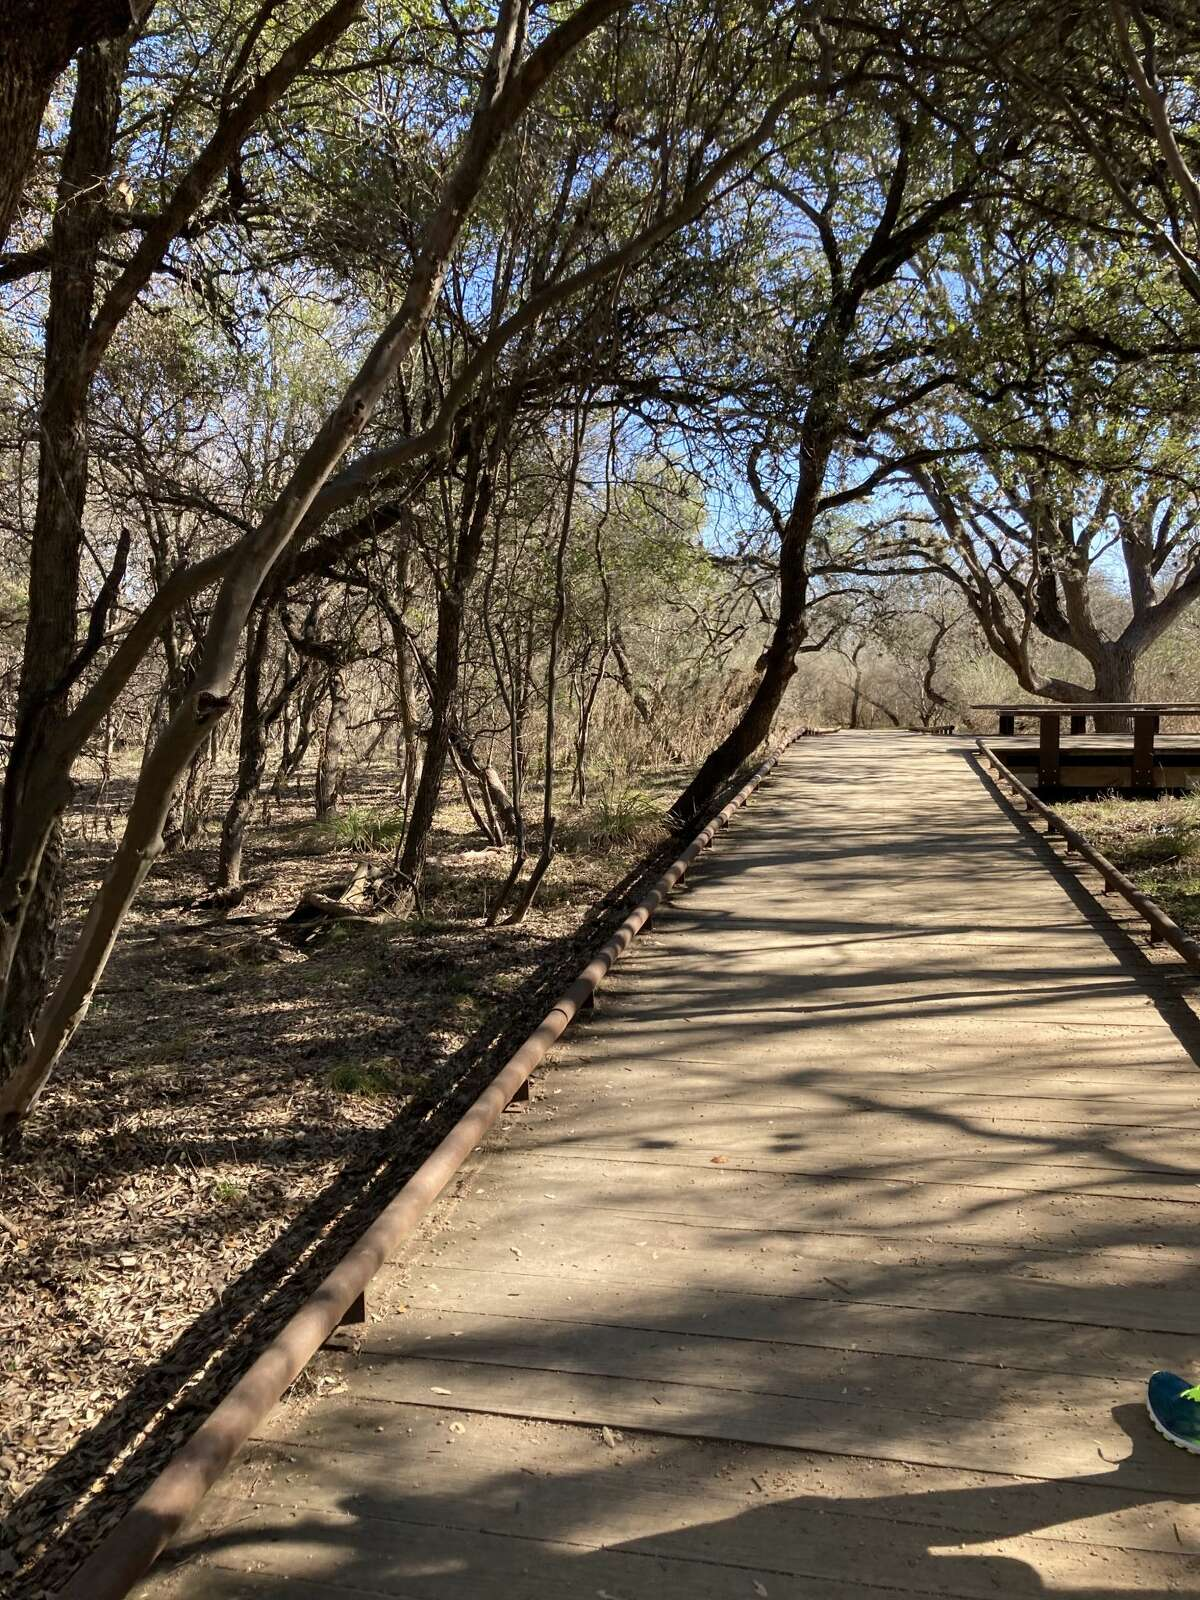 SHORT WALK FROM PARKING In case you only want to visit the land bridge, don't worry, the walk is not long. There are two major parking areas at the park with one entrance on Blanco Road and another on Northwest Military. The East entrance on Blanco Road has the shortest distance of walking with only two trails while the Northwest Military Entrance has three trails. However, both entrances with connected trails will get you to the land bridge in about a 20 minute walk since the bridge is located at the center of the park. This is good news if you just want a quick exercise trip to explore. There are also nice views through shaded trees and board walks with plenty of spots to relax along the way.